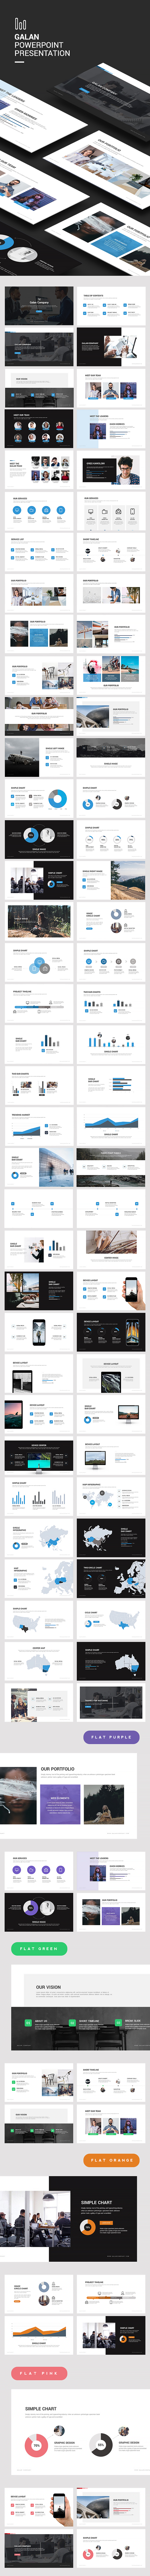 Galan Powerpoint Presentation - Business PowerPoint Templates